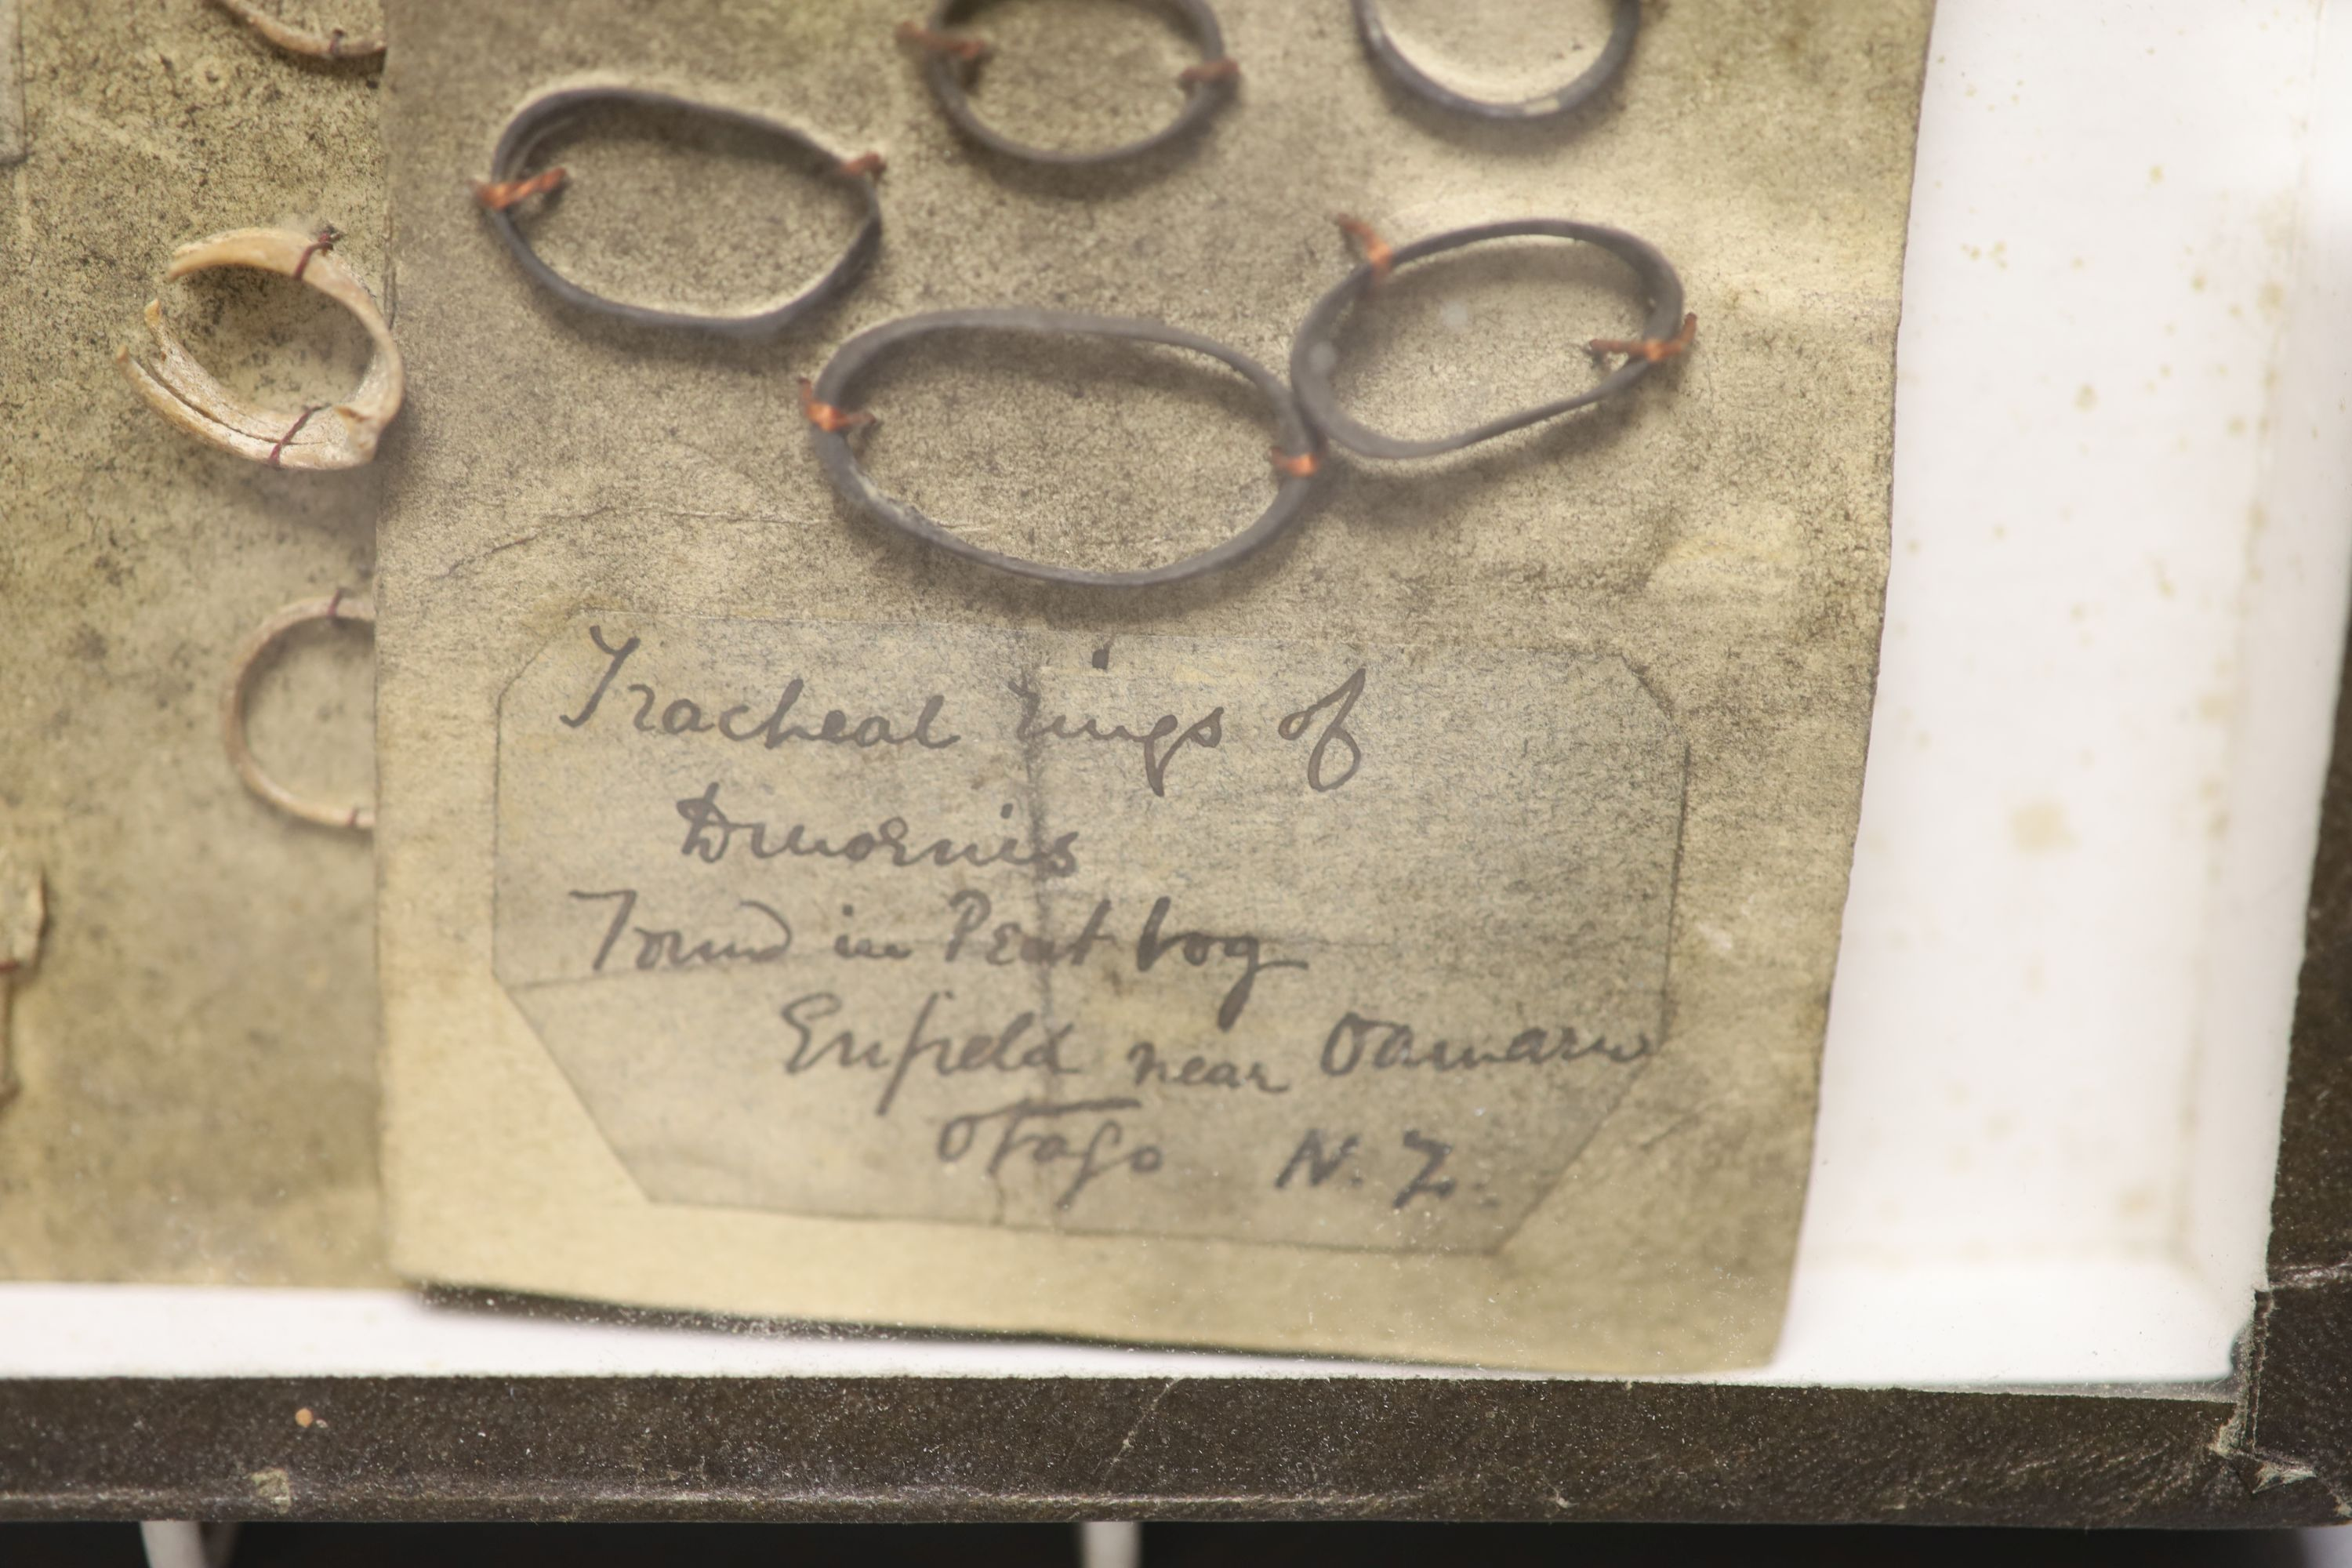 New Zealand Natural History - Moa tracheal rings and bones, collected before 1917, each mounted with - Image 2 of 2